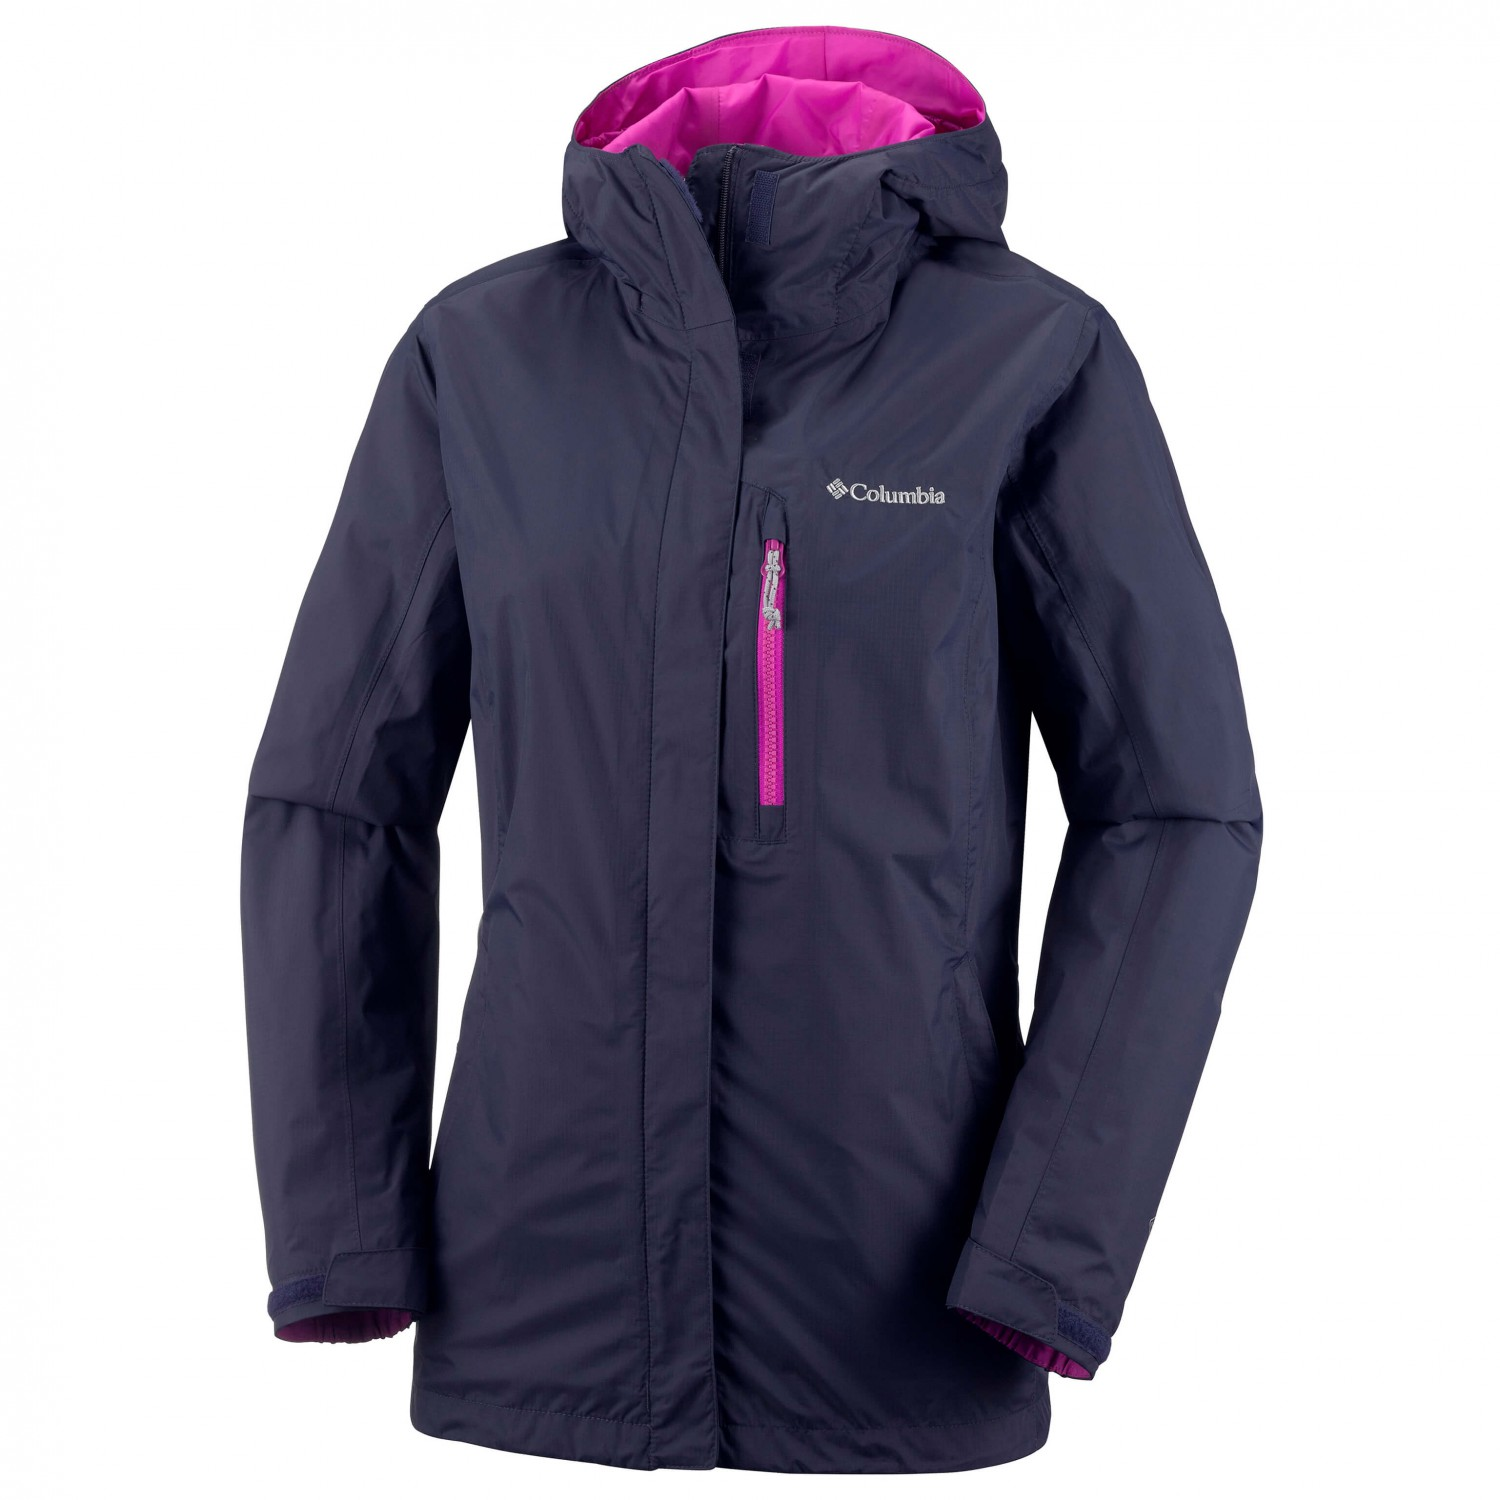 Columbia Pouring Adventure Jacket Women S Free Uk